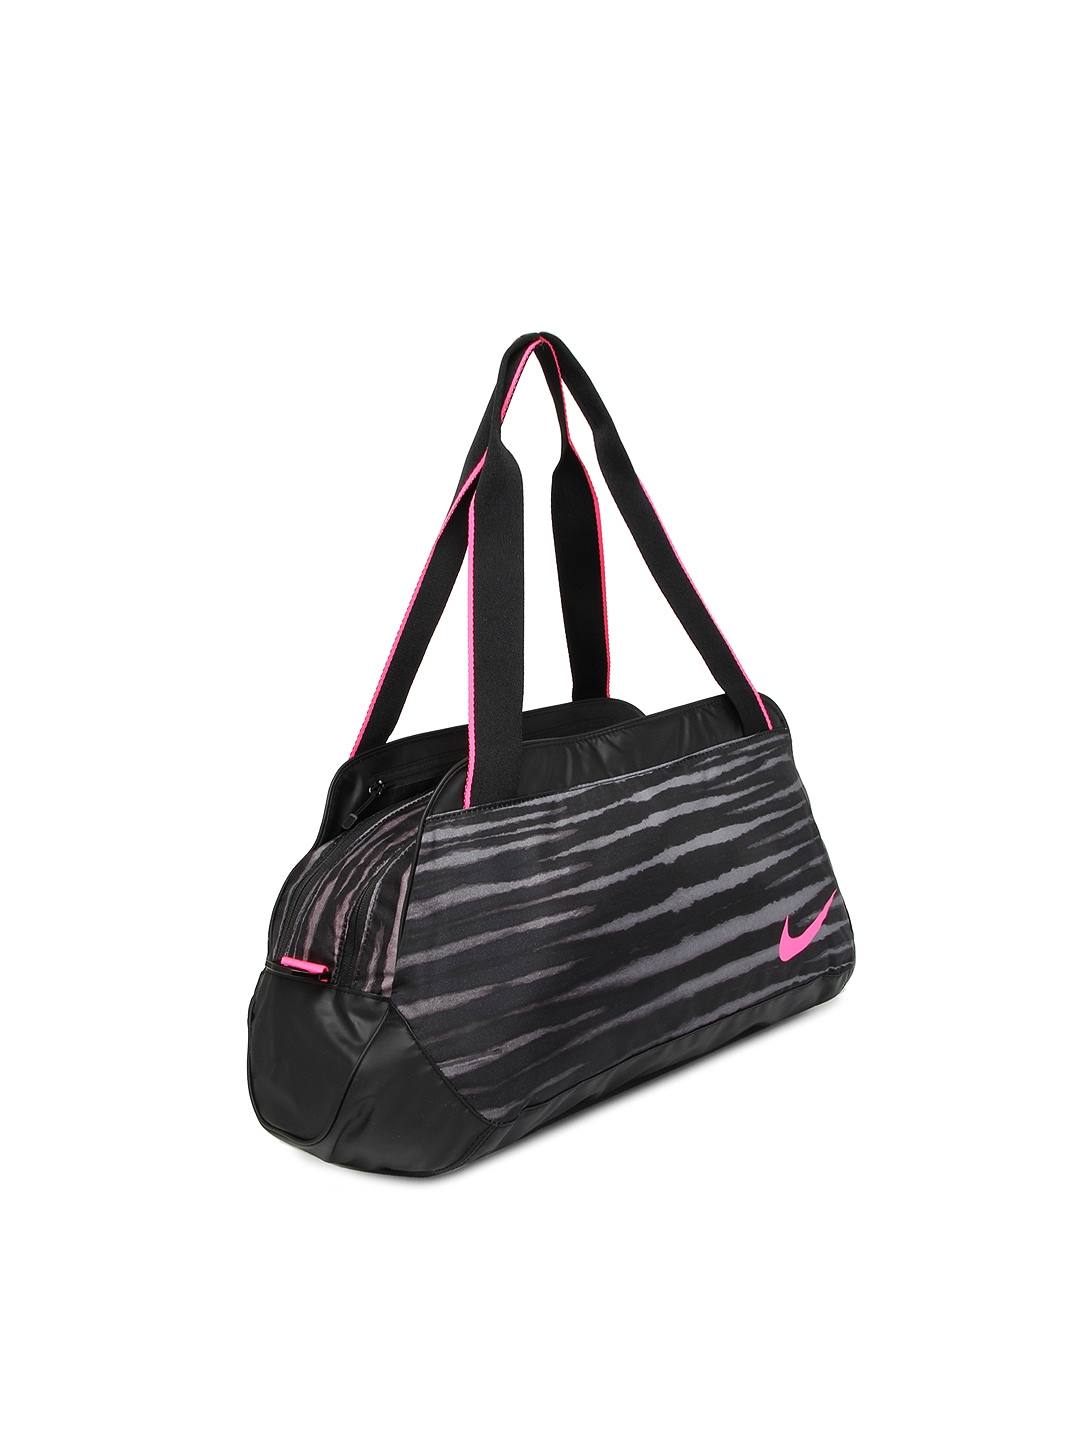 e7723b6c8a1b Womens Athletic Duffle Bag